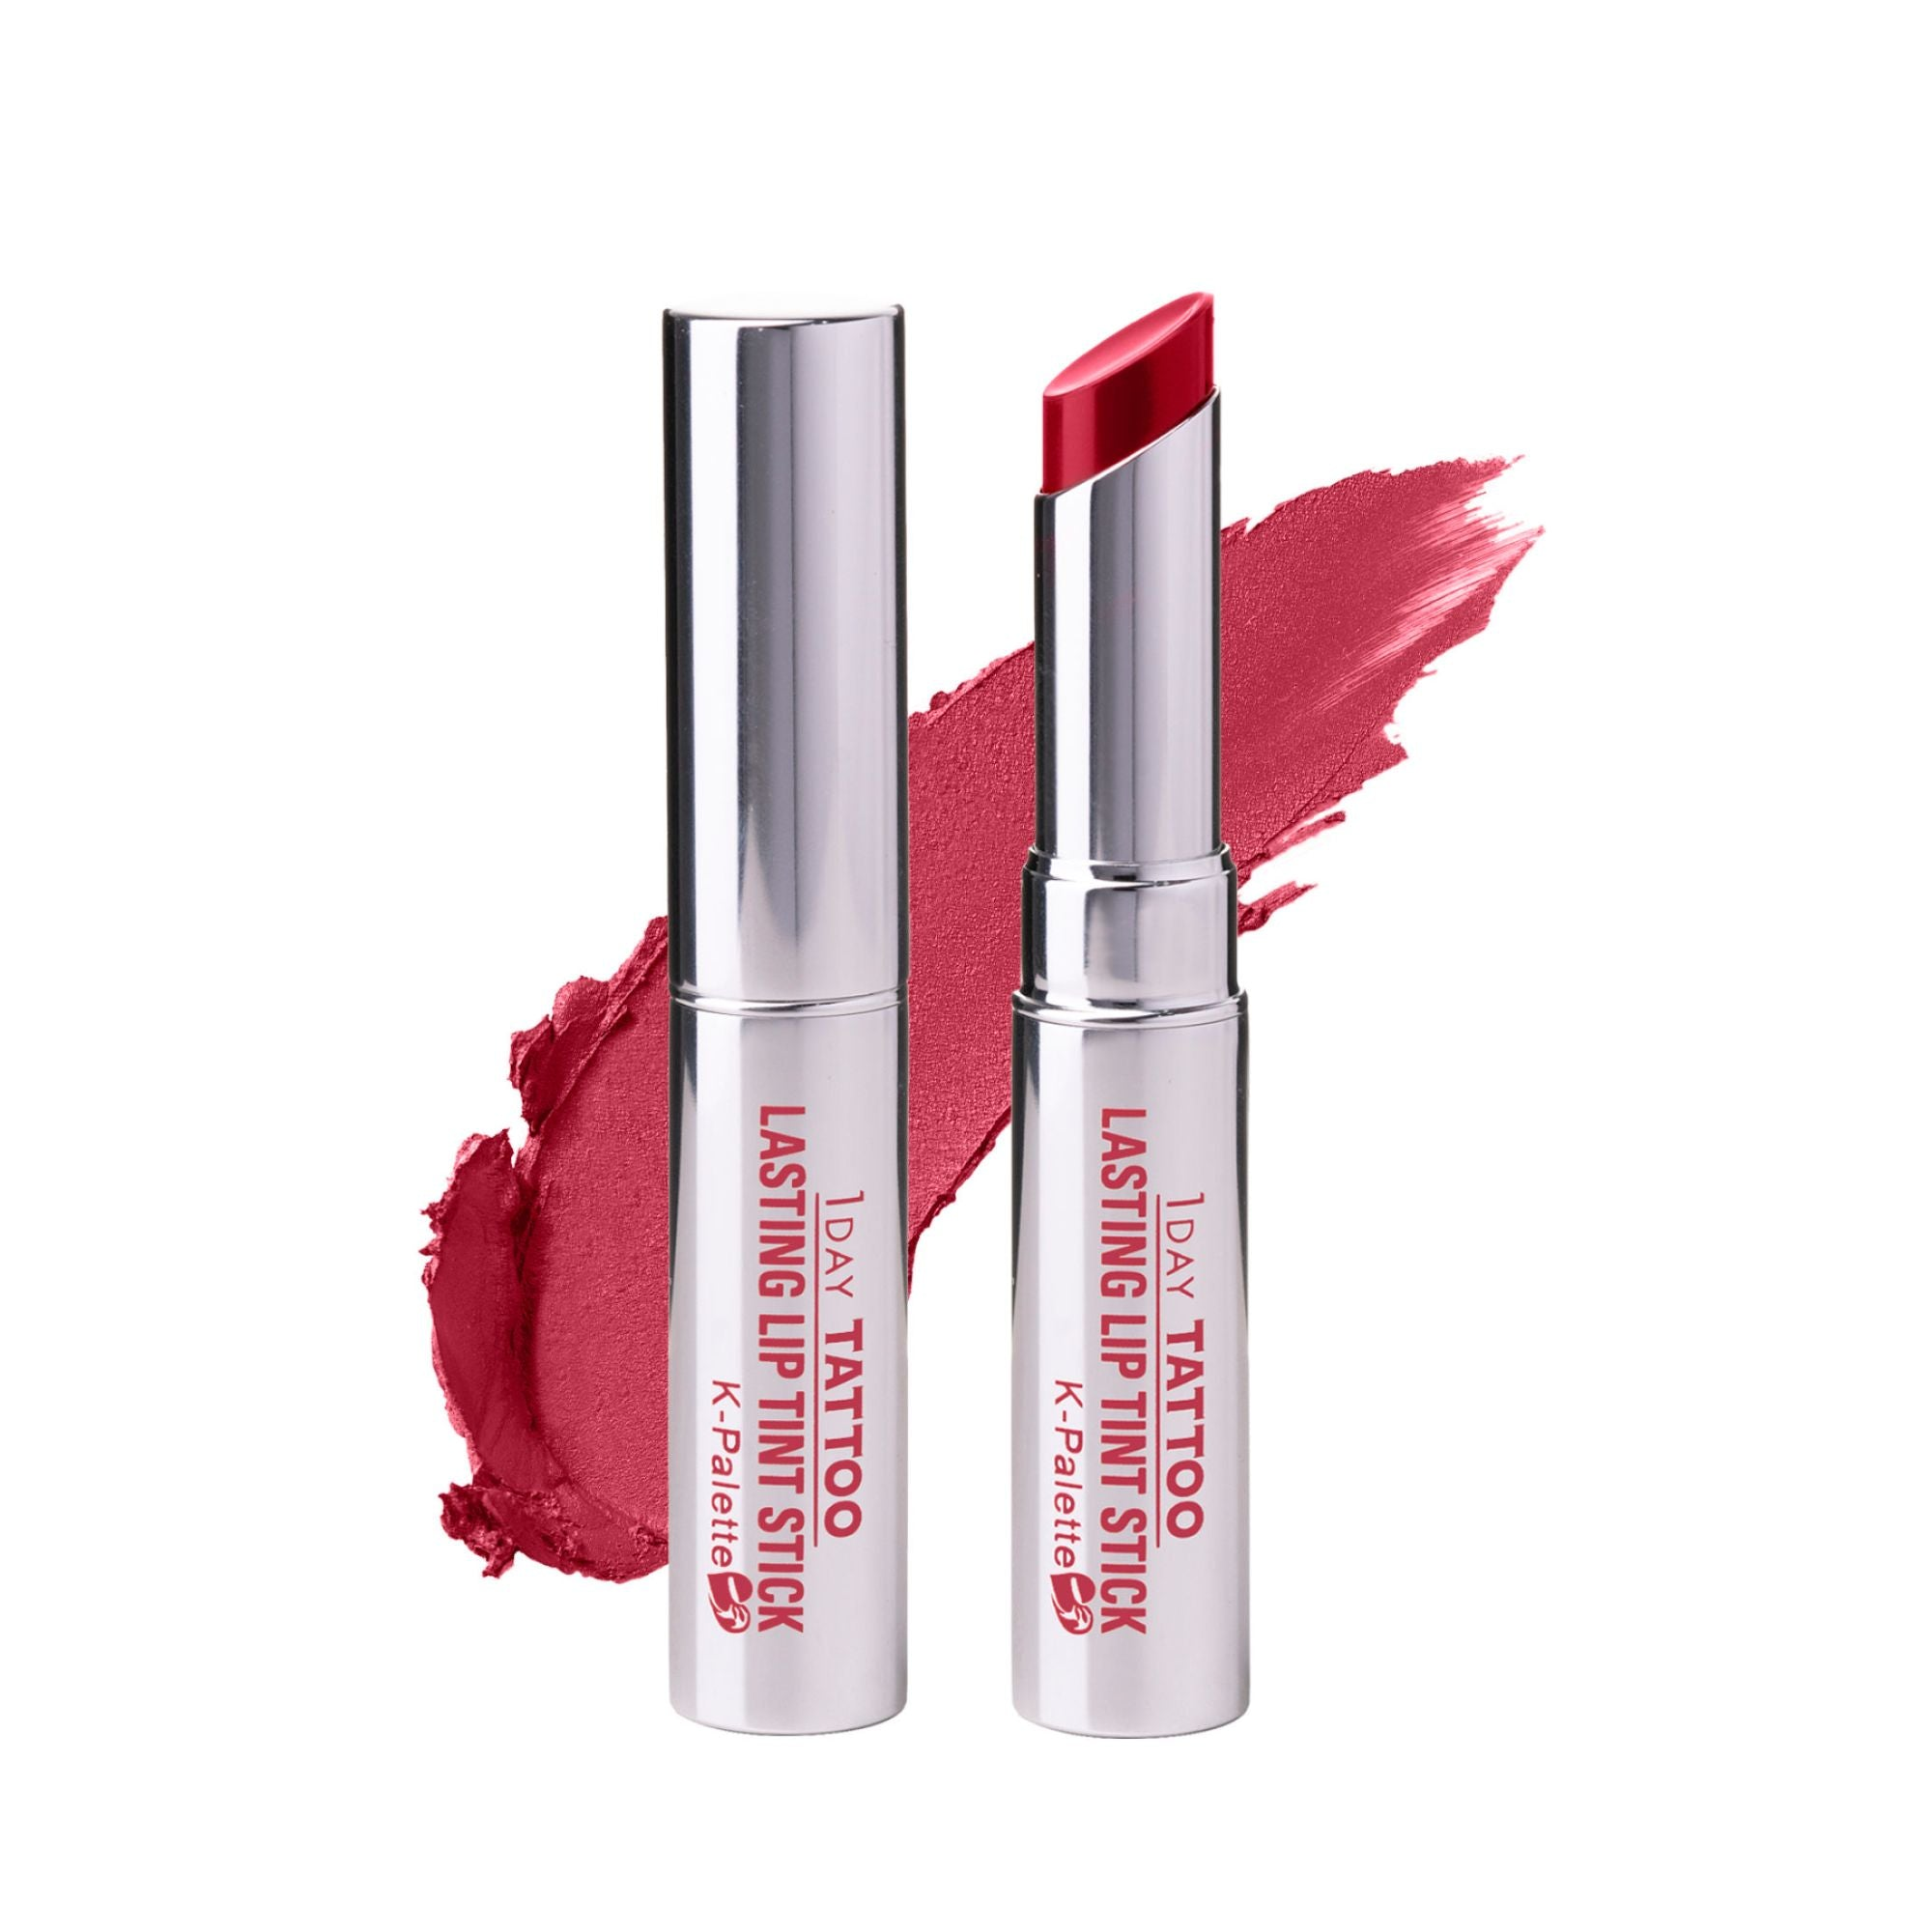 Lasting Semi-Matte Lip Tint Stick - 02 Mauve Crush